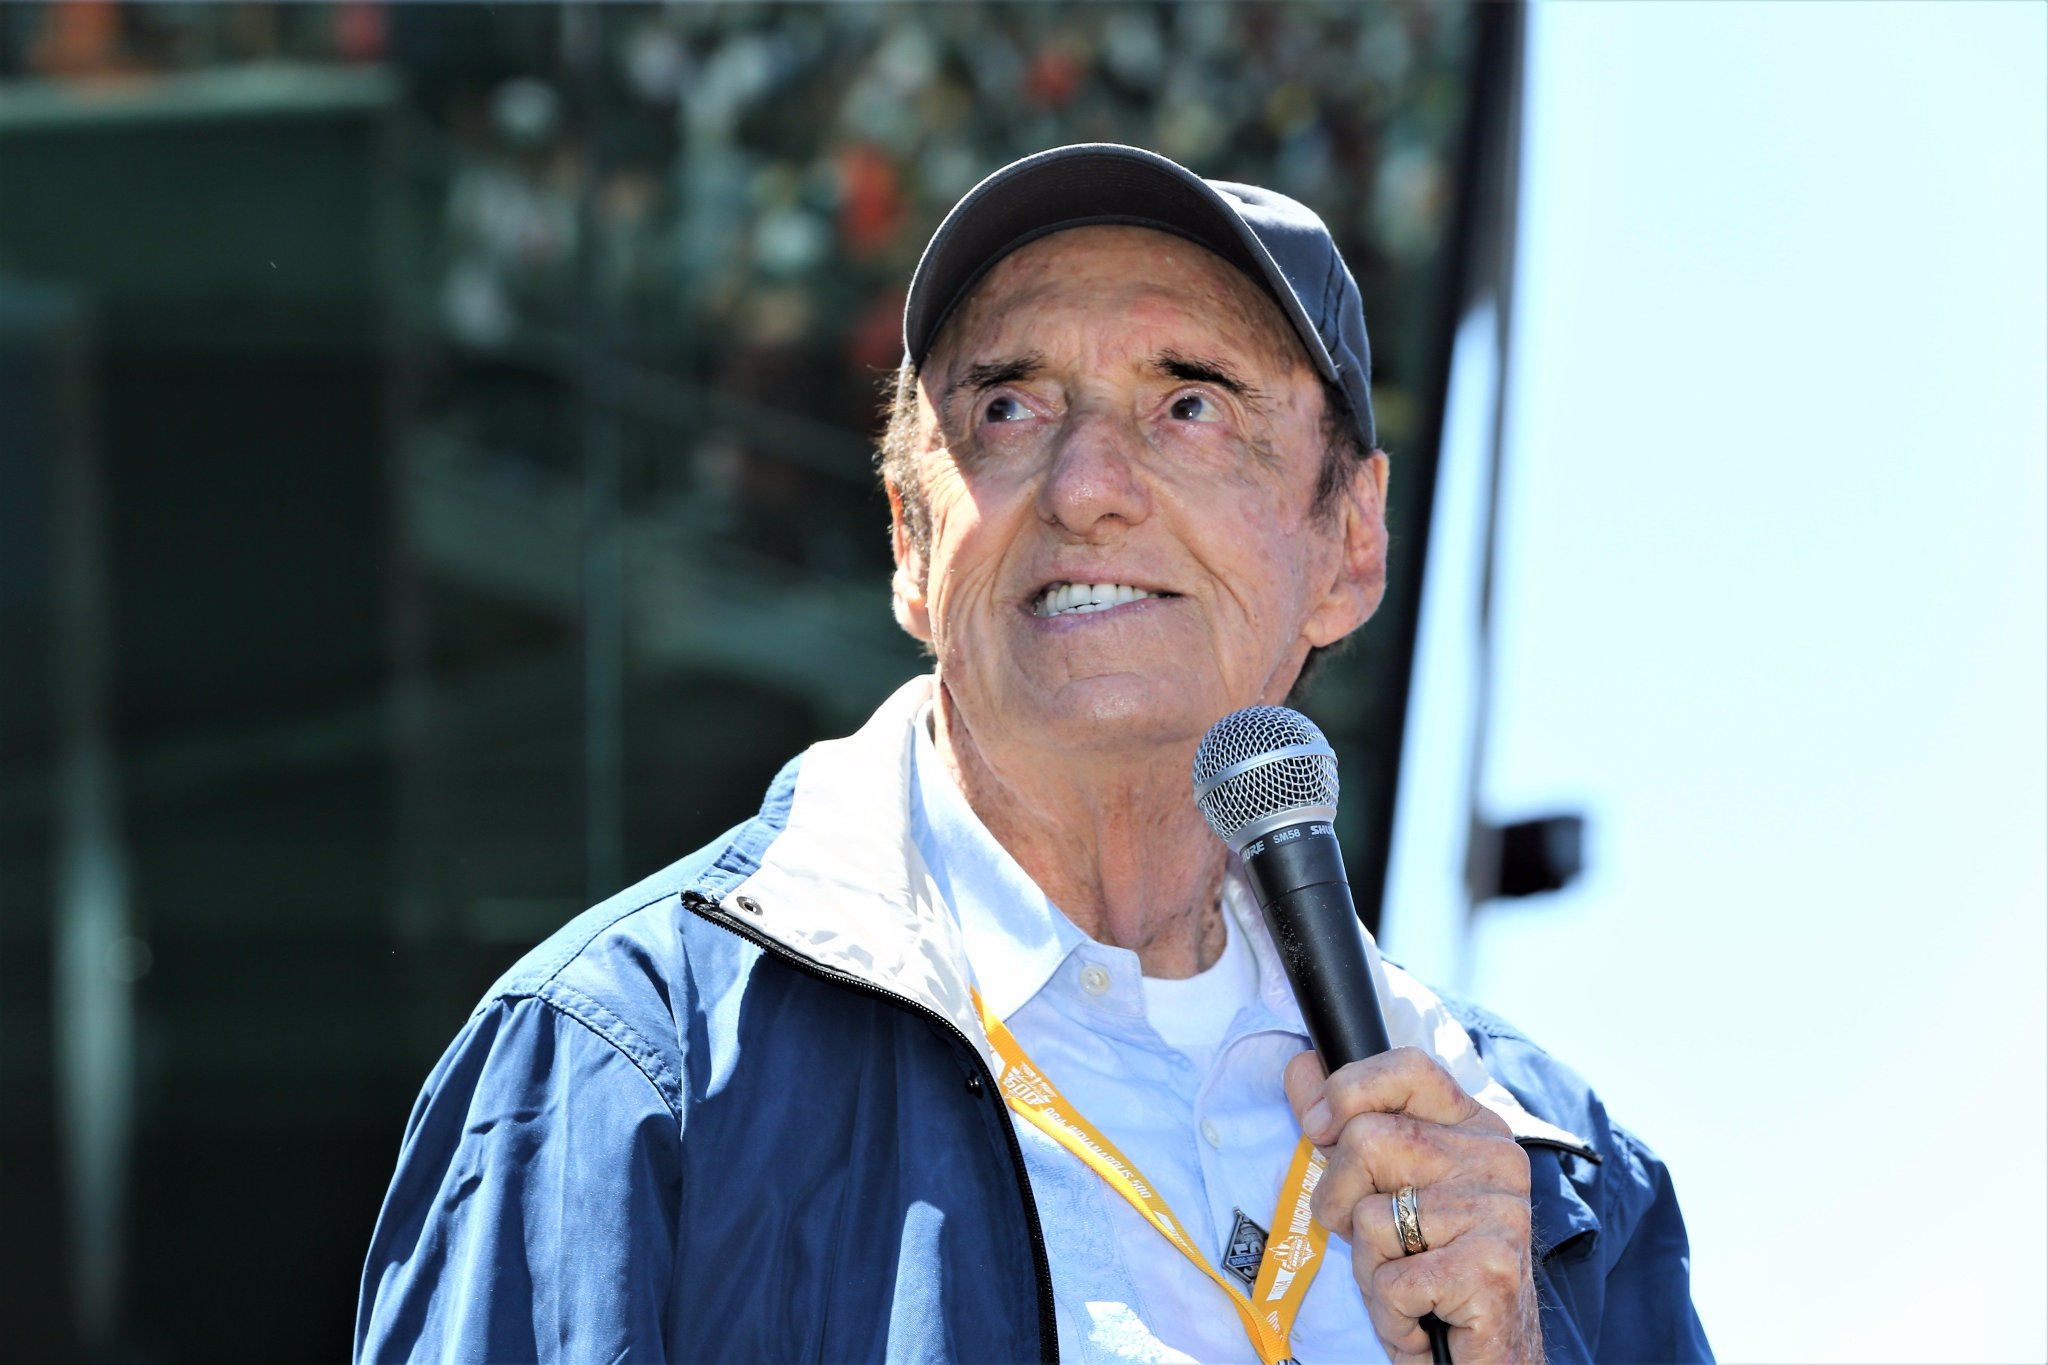 To help us wish the legendary Jim Nabors a very happy 87th birthday!